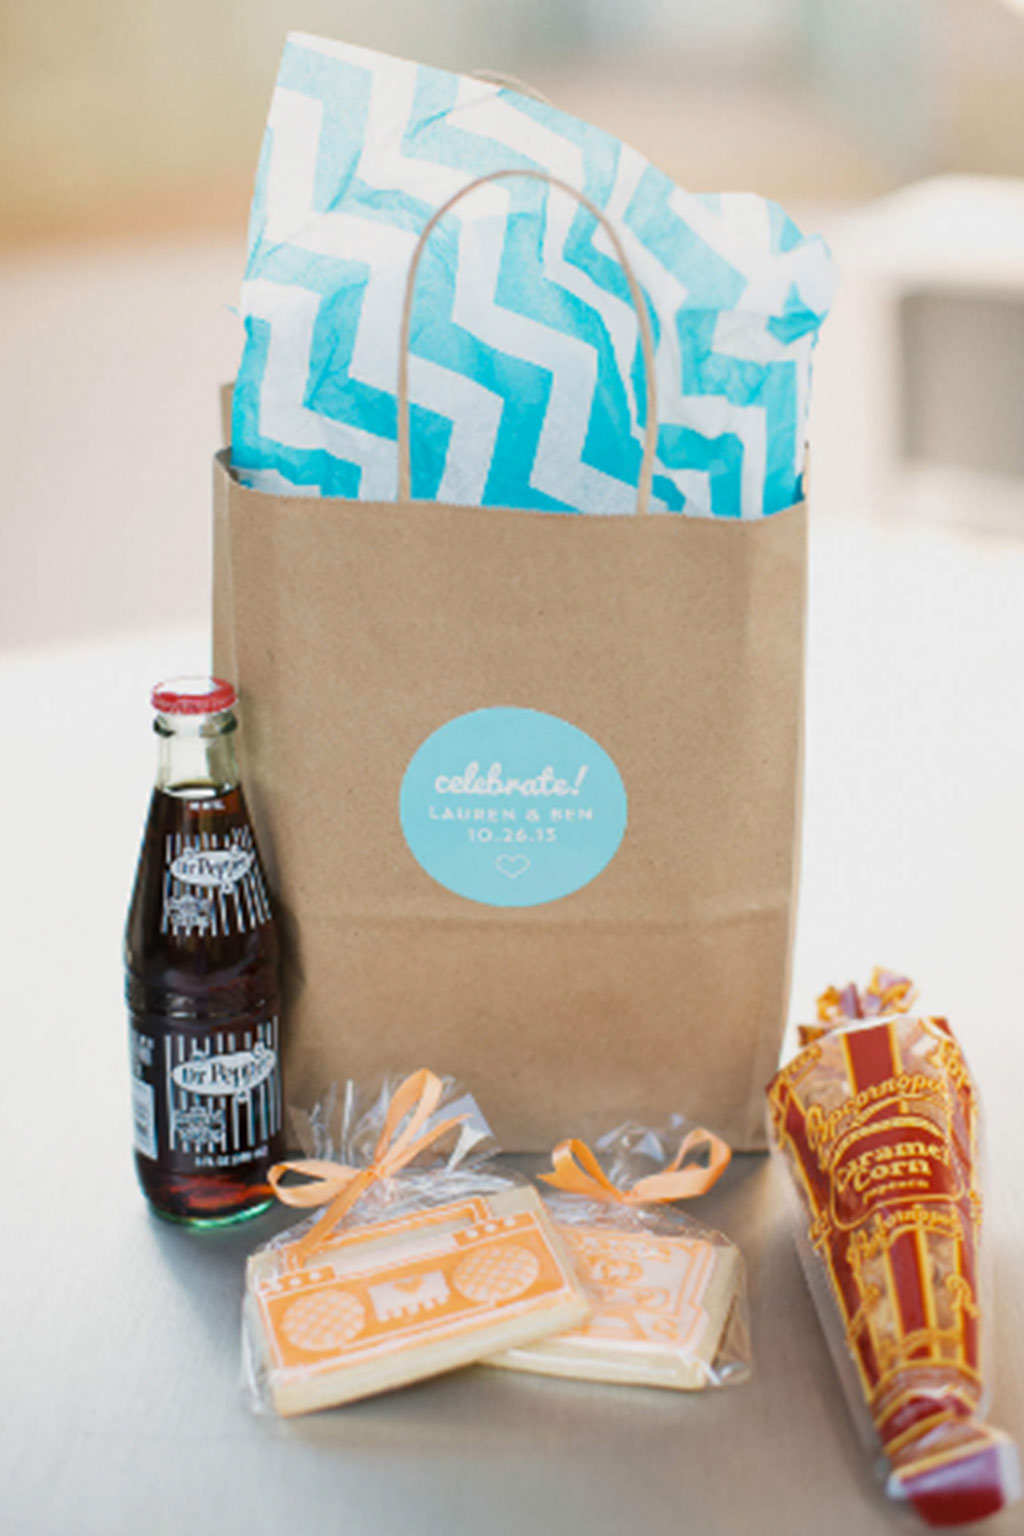 Dr. Pepper, popcorn, and tape cassette cookies in wedding out of town welcome hotel bag